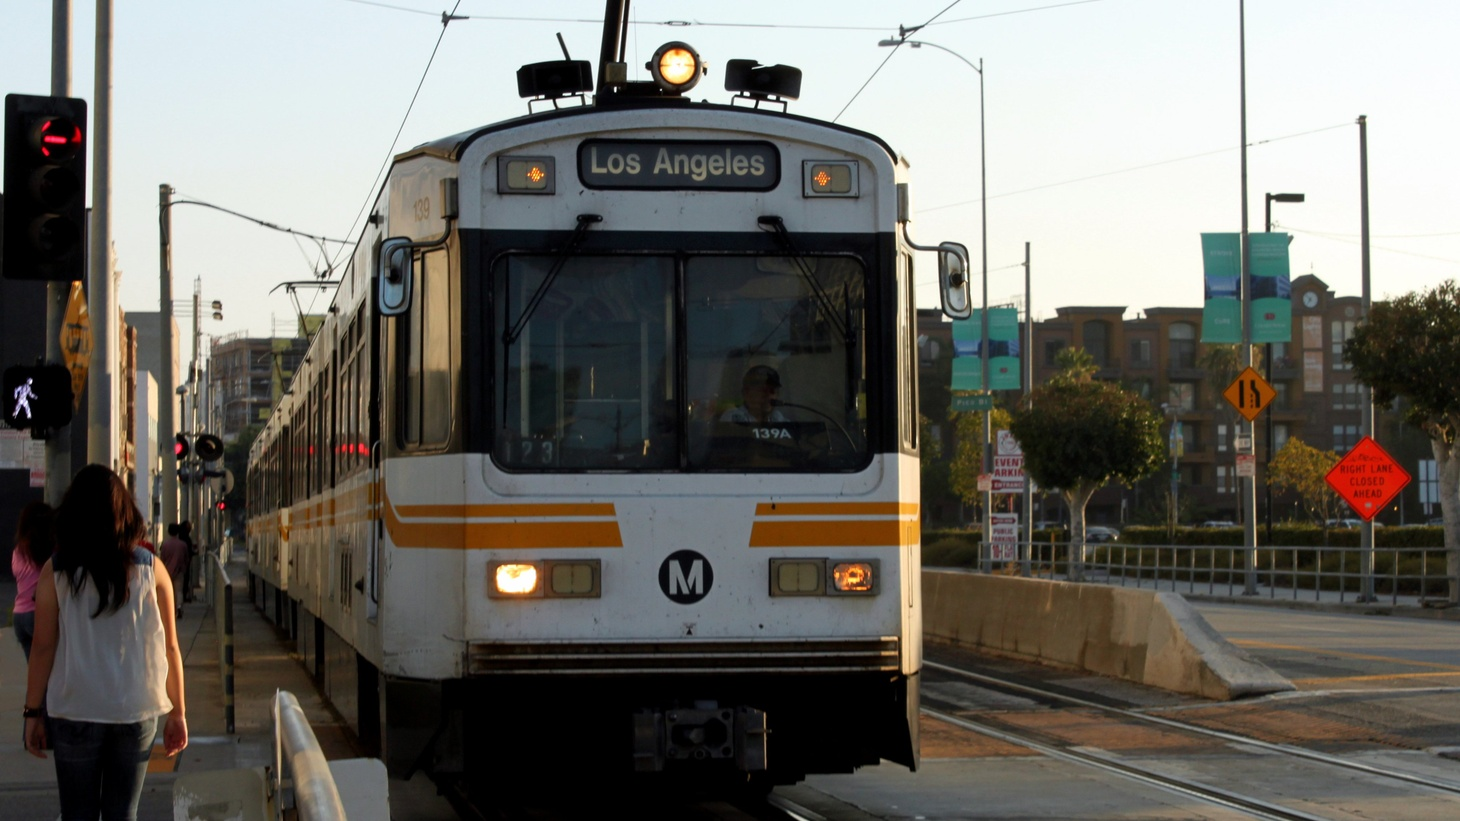 Metro Blue Line / Expo Line at Pico station.